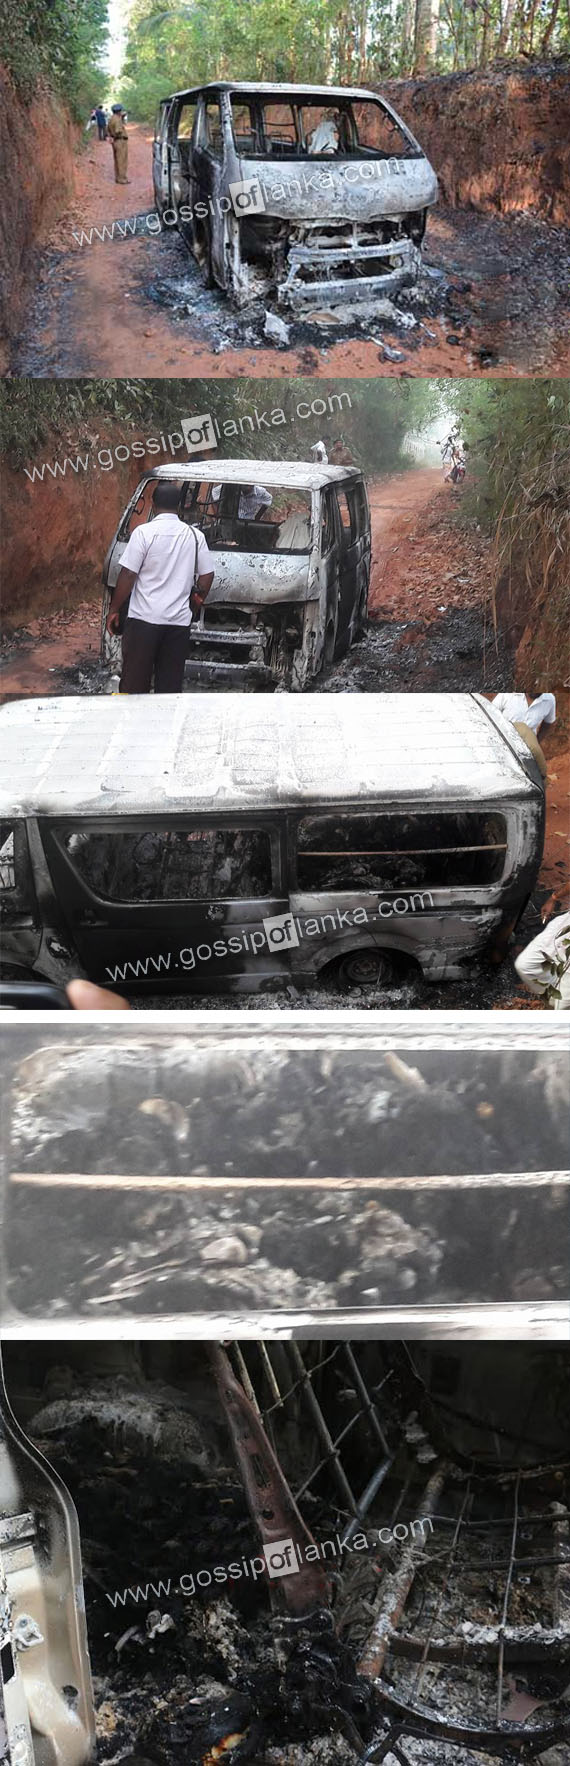 Five burnt bodies found in Dankotuwa - Updates